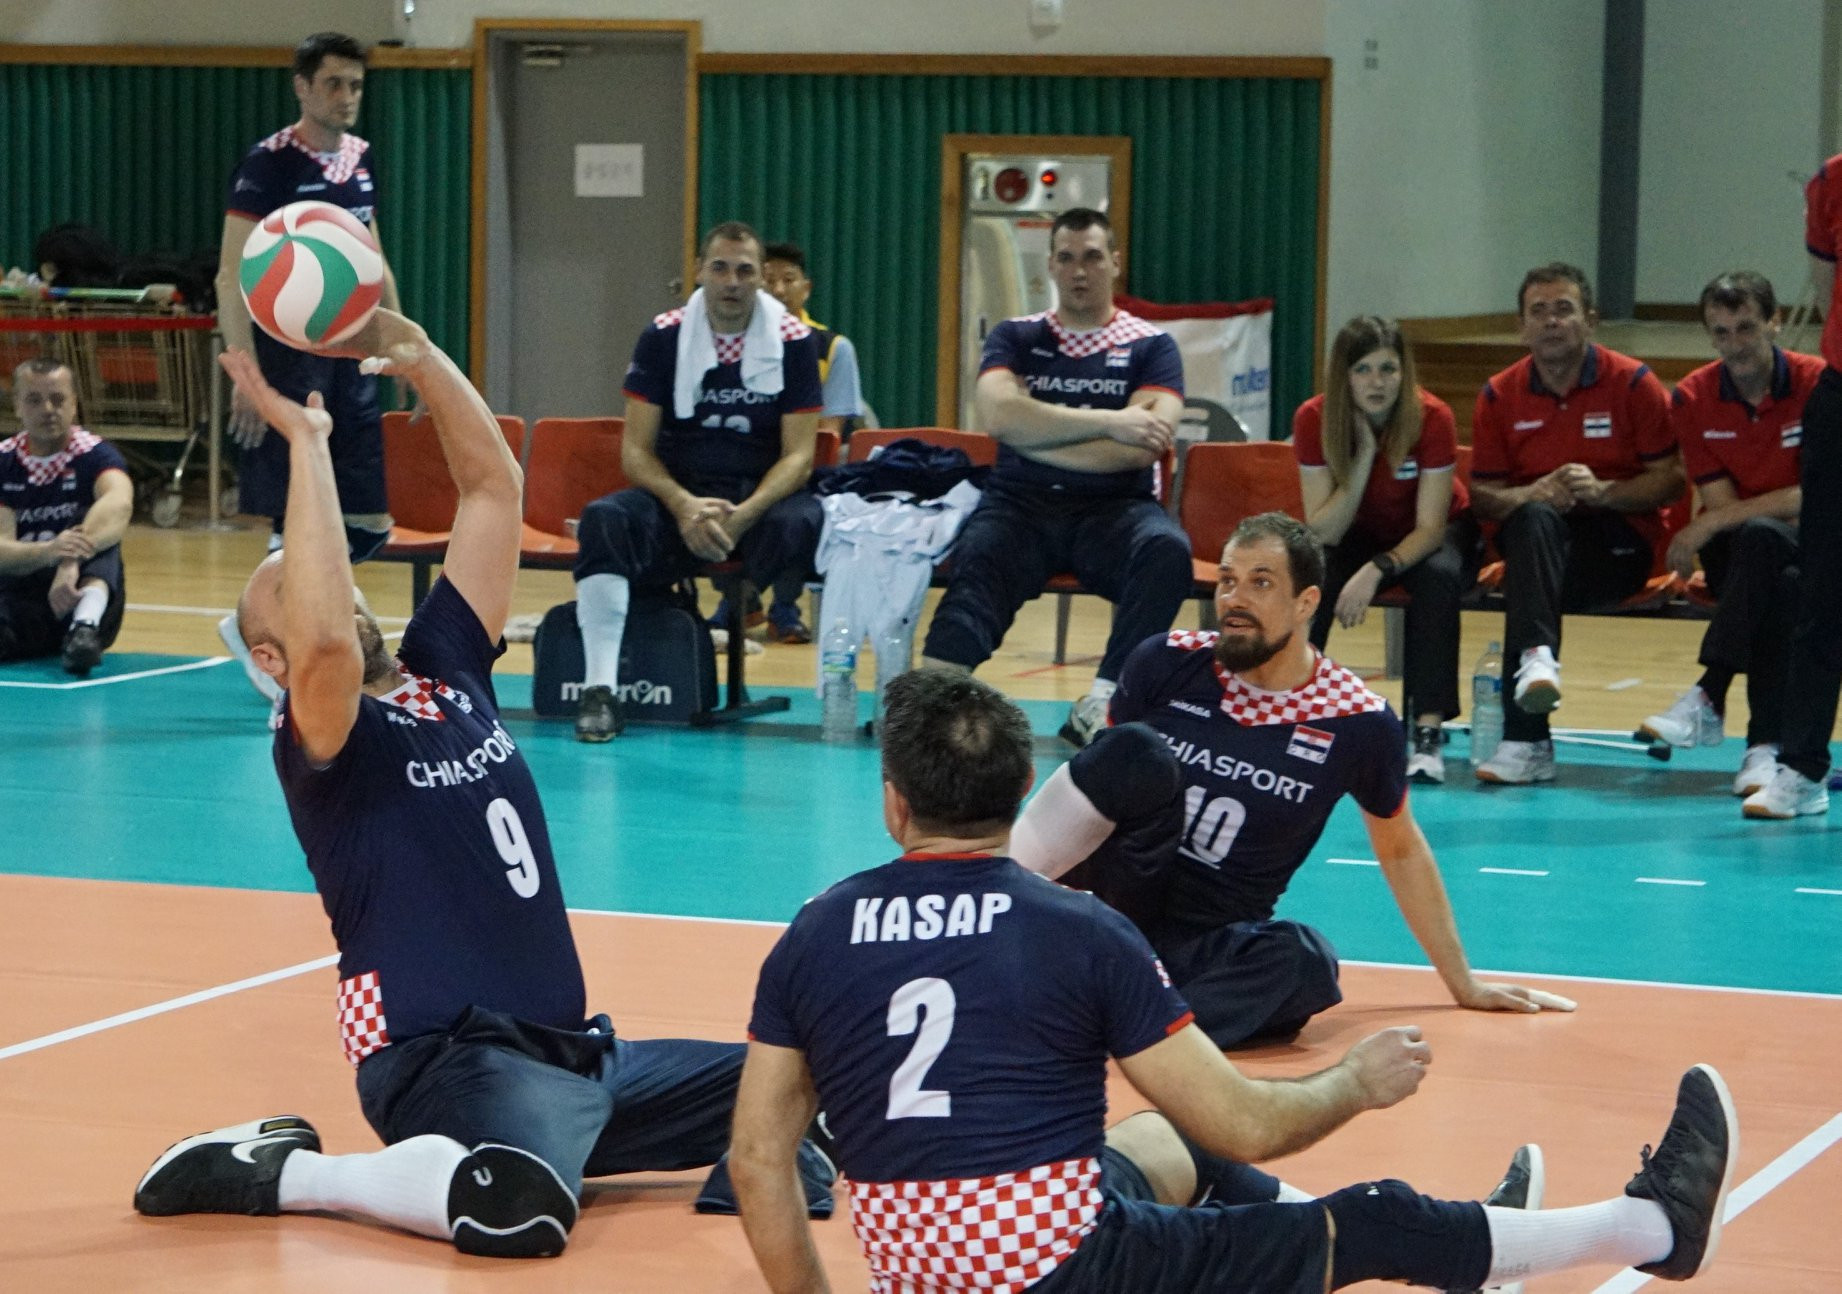 Croatia secured their place at the 2018 Sitting Volleyball World Championships on the final day of the qualifying tournament in Jeju ©World ParaVolley/Facebook